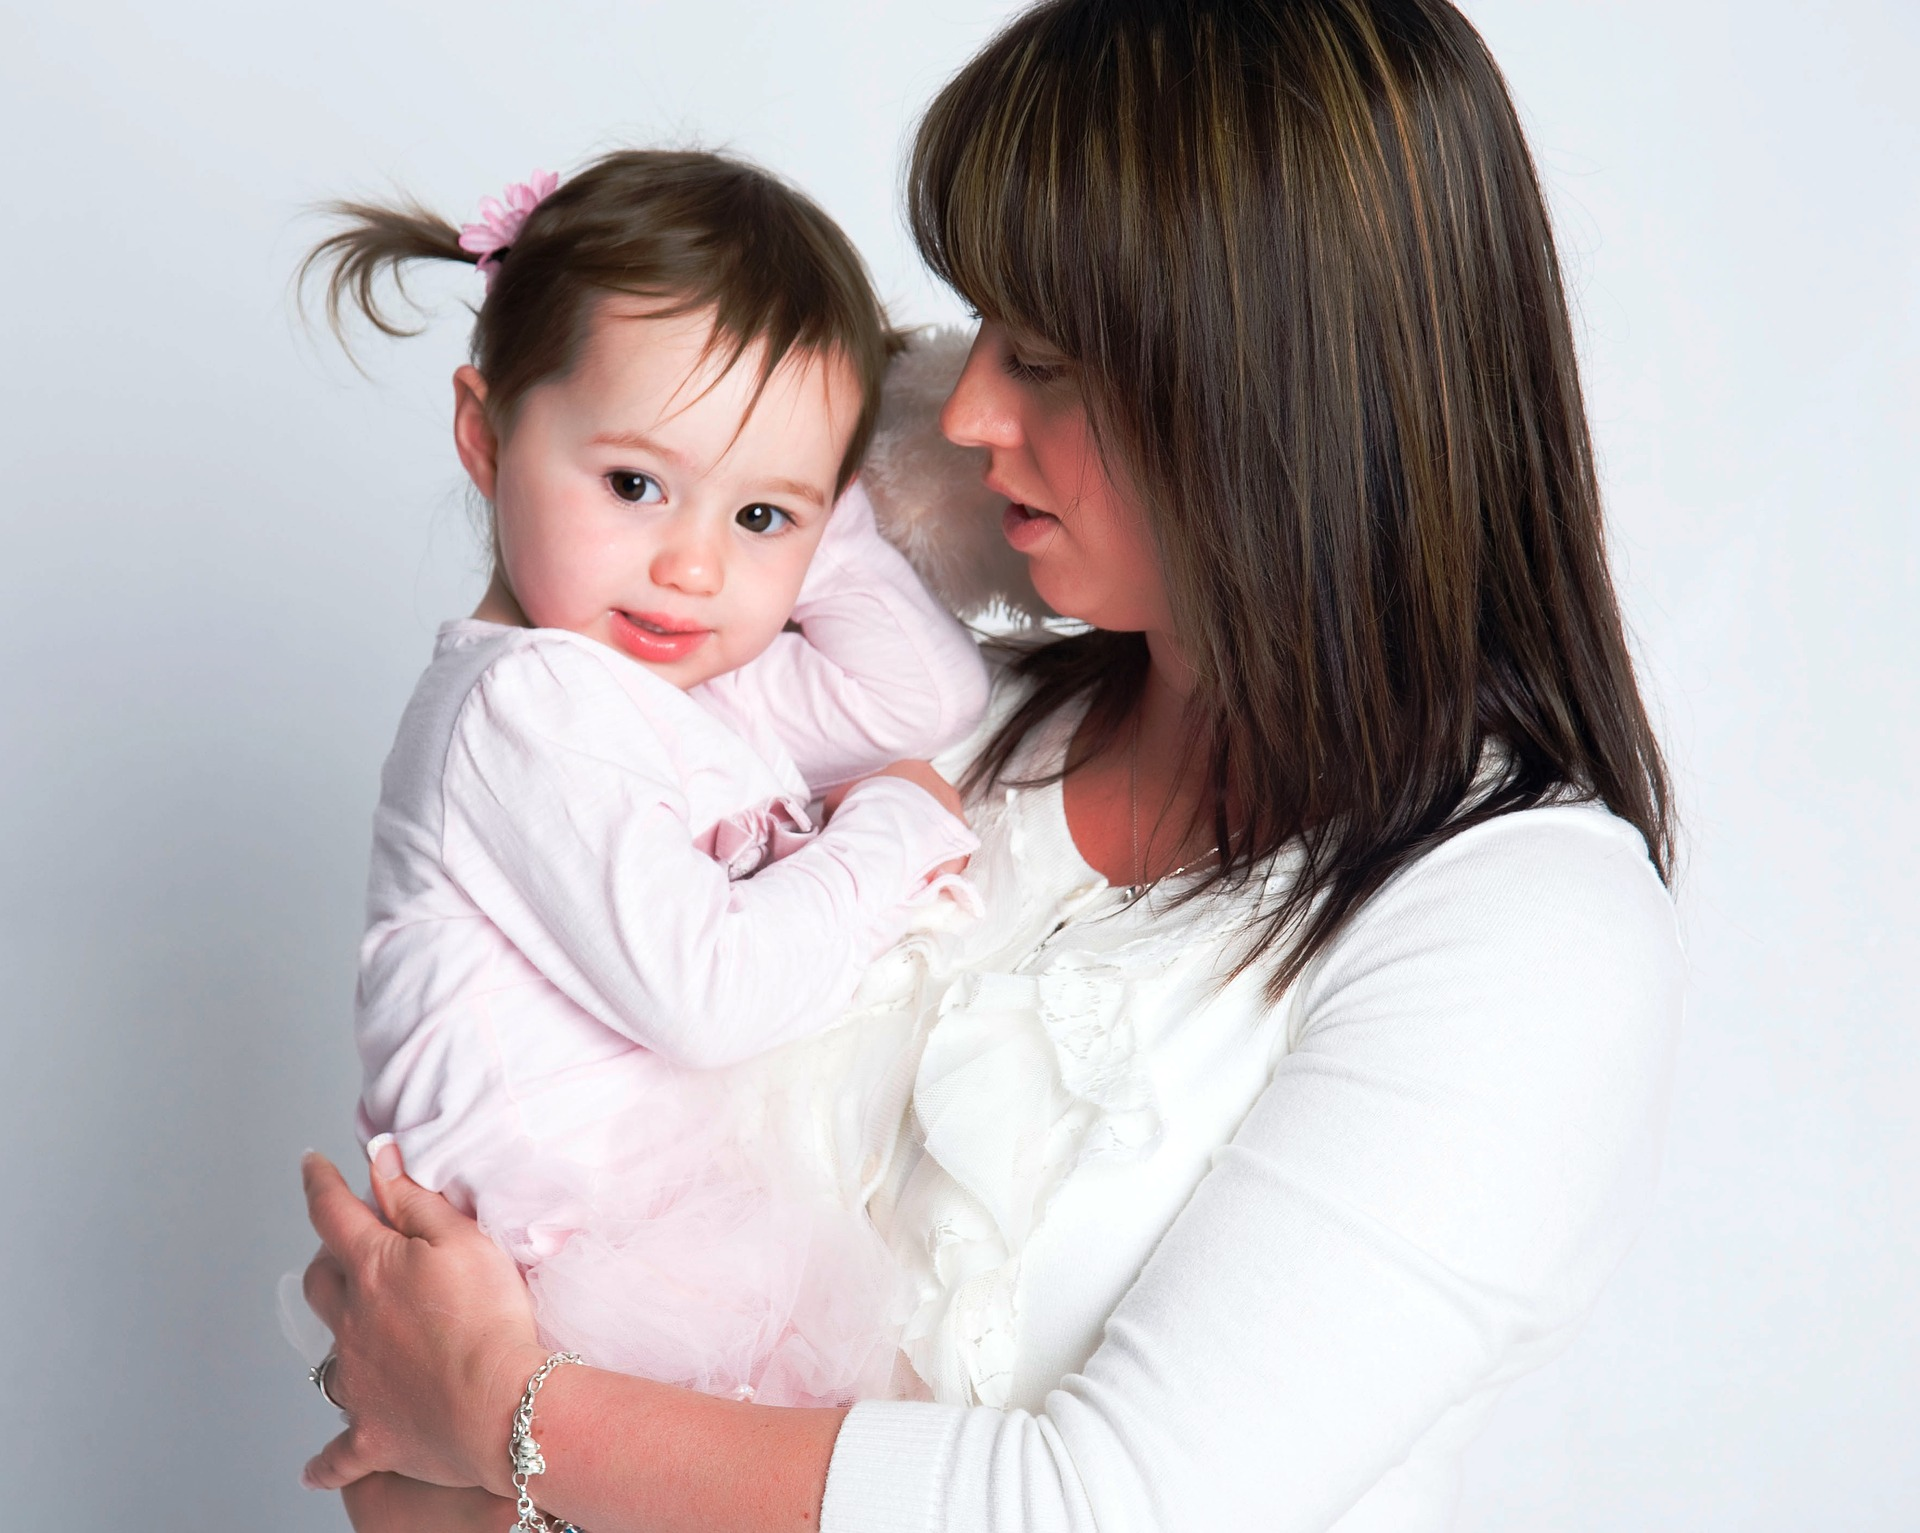 mother-and-daughter-2078075_1920